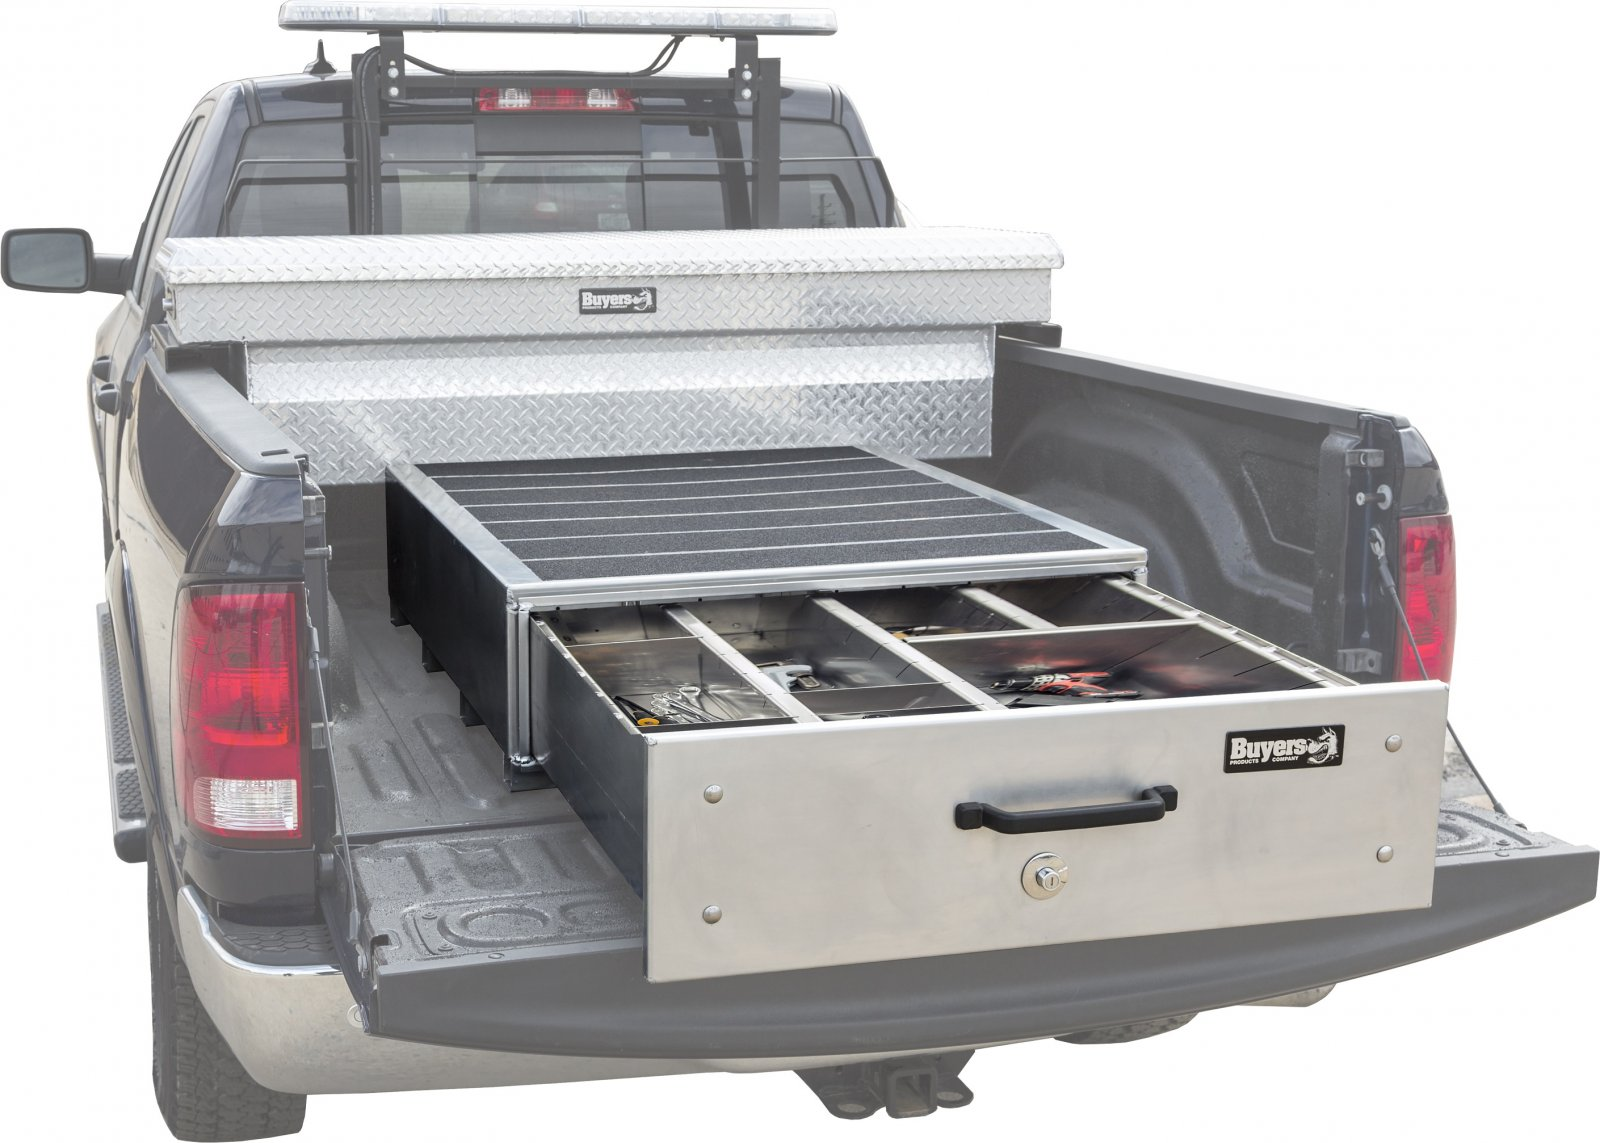 Buyers Slide Out Truck Bed Box.jpg